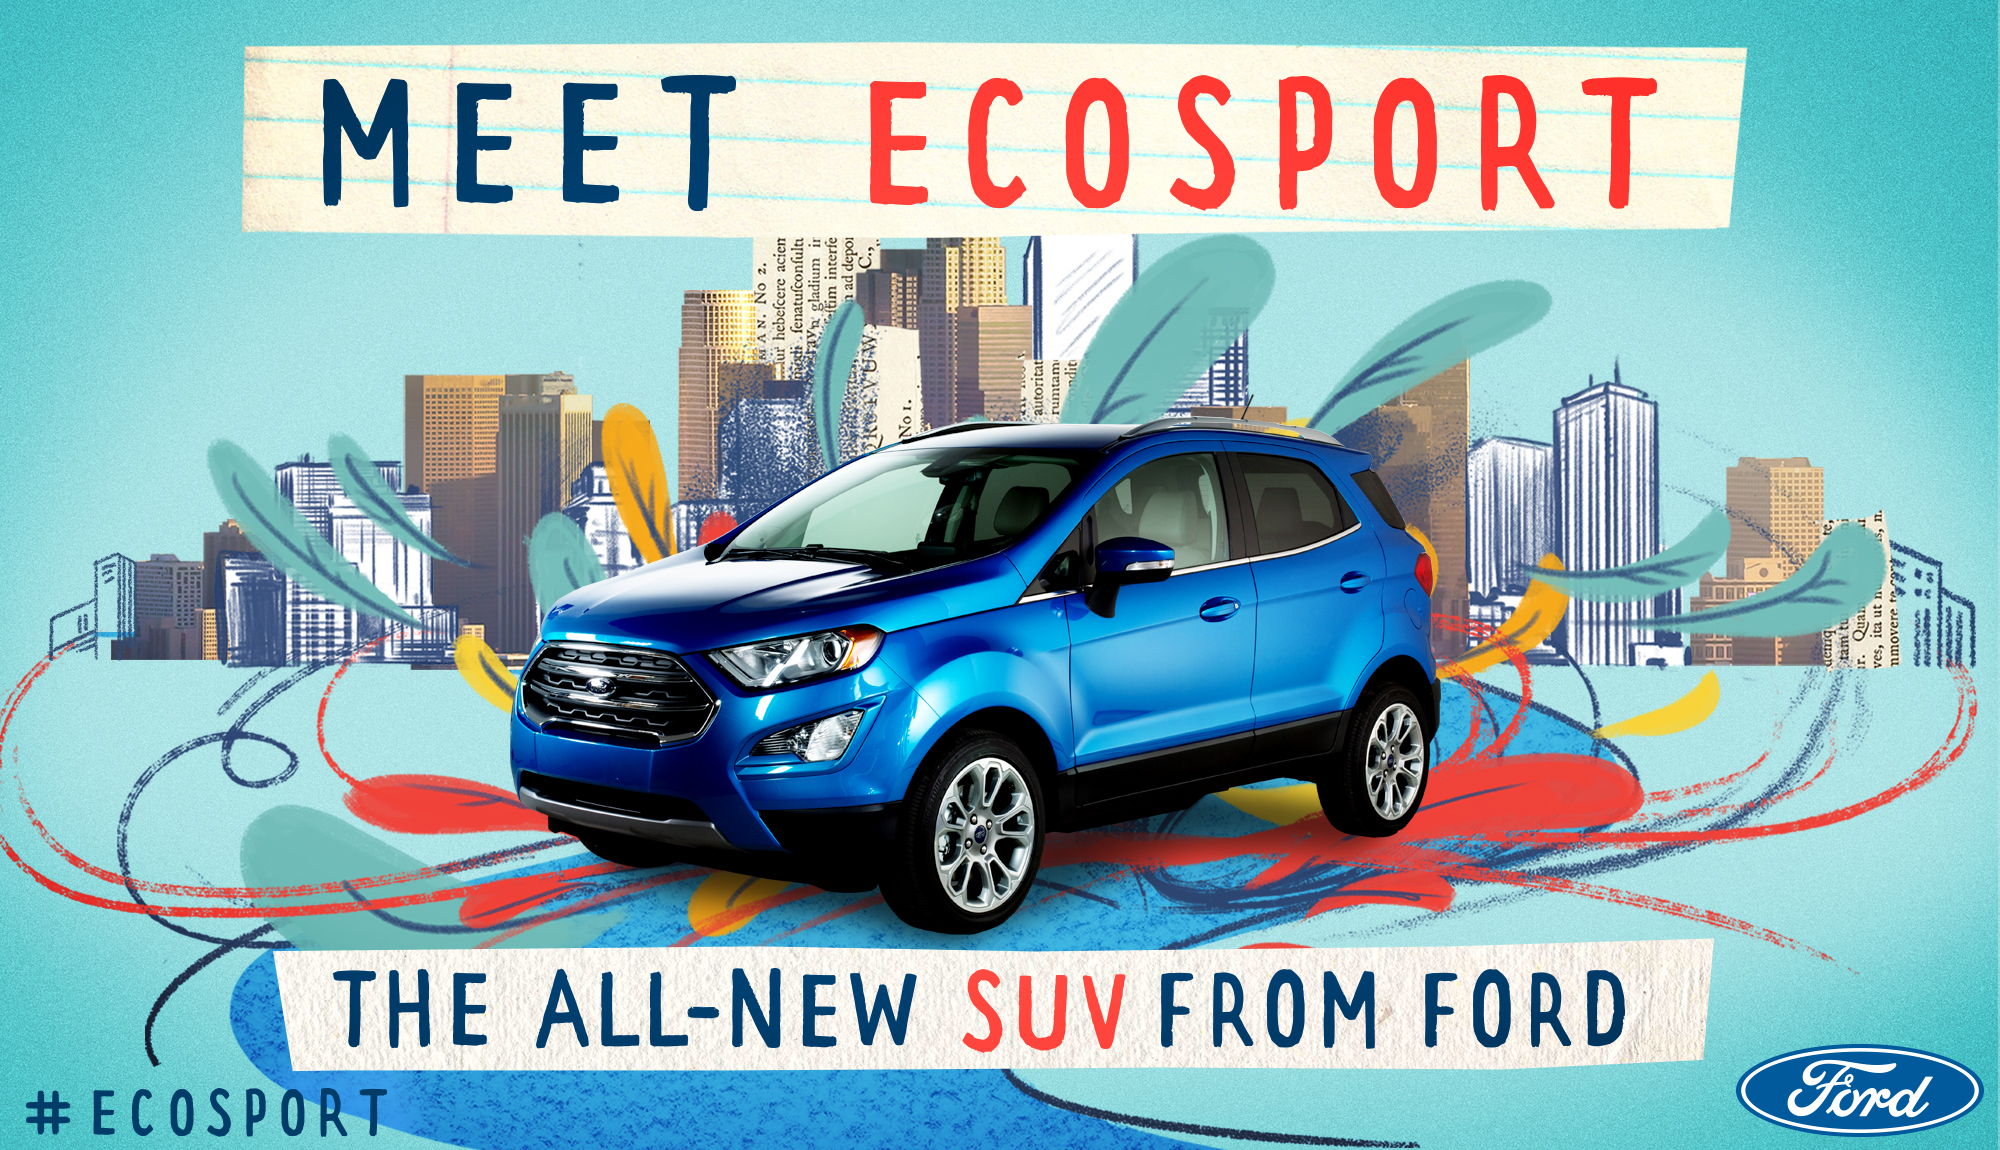 Meet the EcoSport, Ford's New Capable and Connected Compact SUV